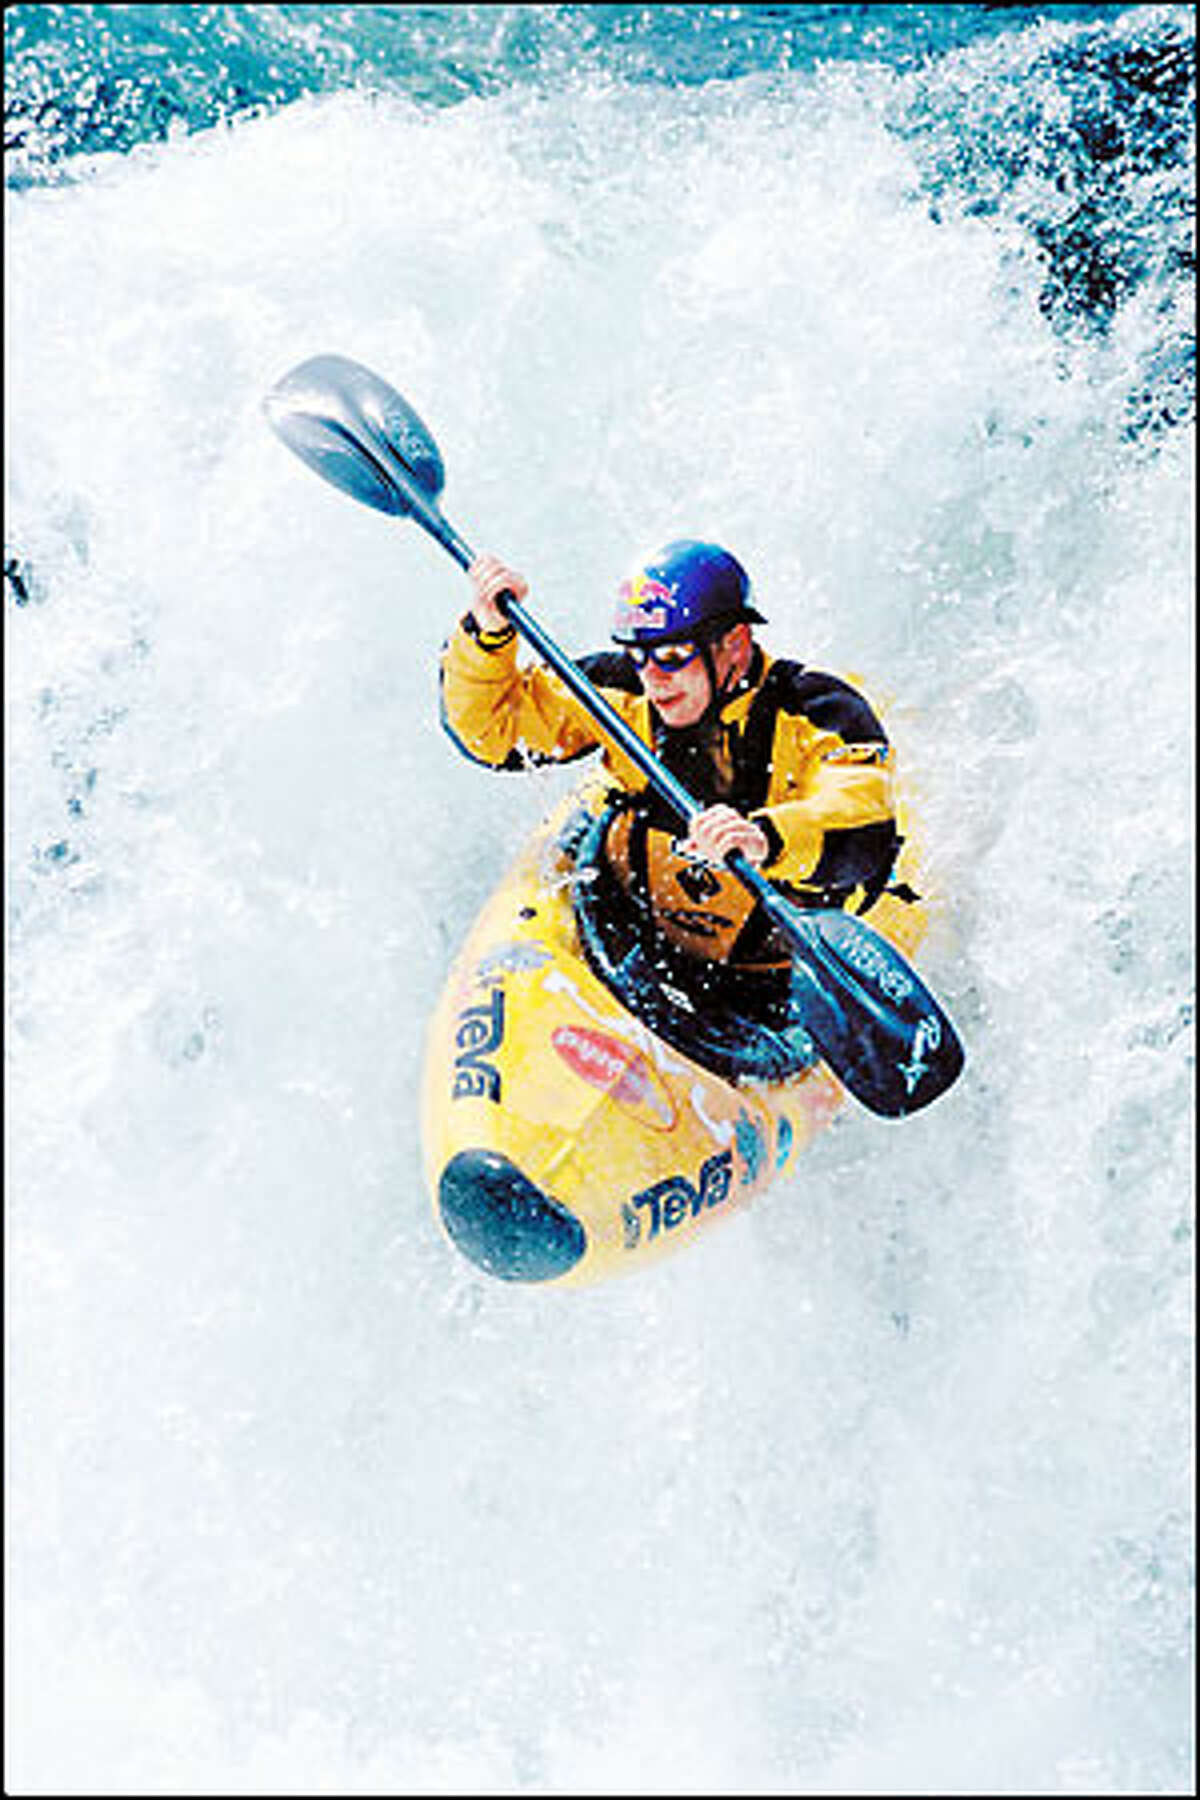 The way of Tao Berman is to conquer rivers while taking risks. He holds the world record for making the highest drop from a waterfall. Above: Berman negotiates a drop in the south fork of the Tuolumne River near Yosemite National Park last spring. Top: He paddles down one of a series of waterfalls on the Sheep River in British Columbia earlier this month.